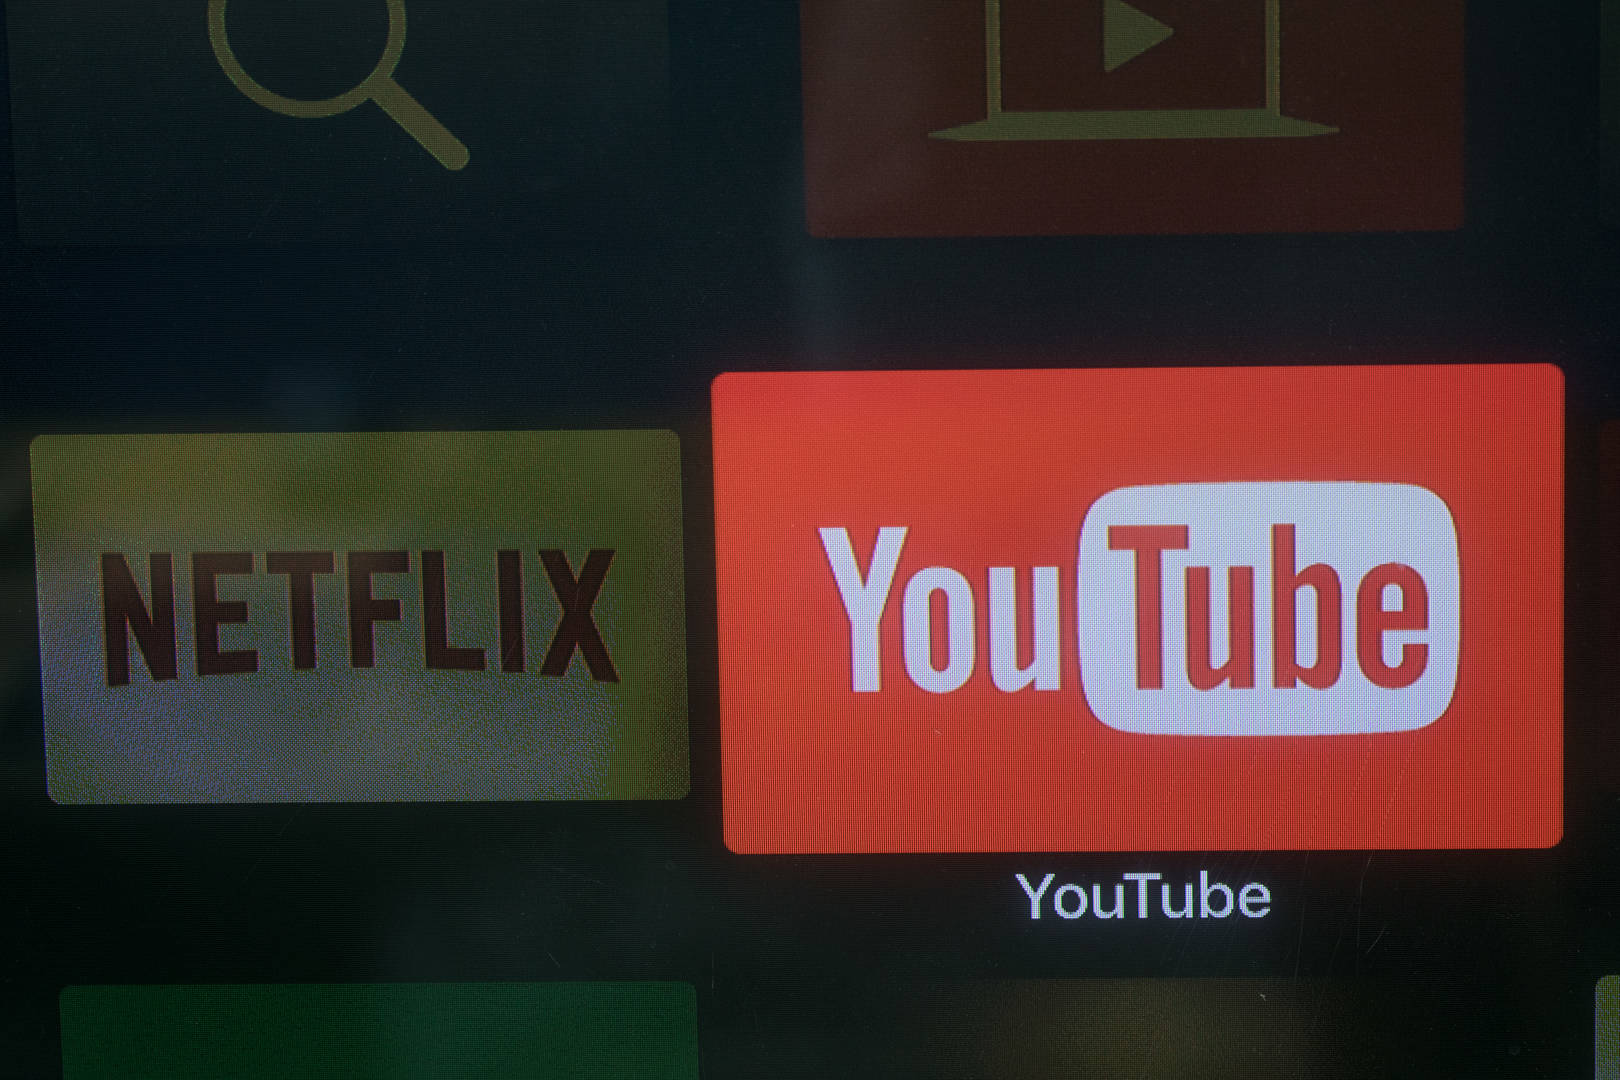 YouTube Clocks In 2 Billion Monthly Users Who Watch 250